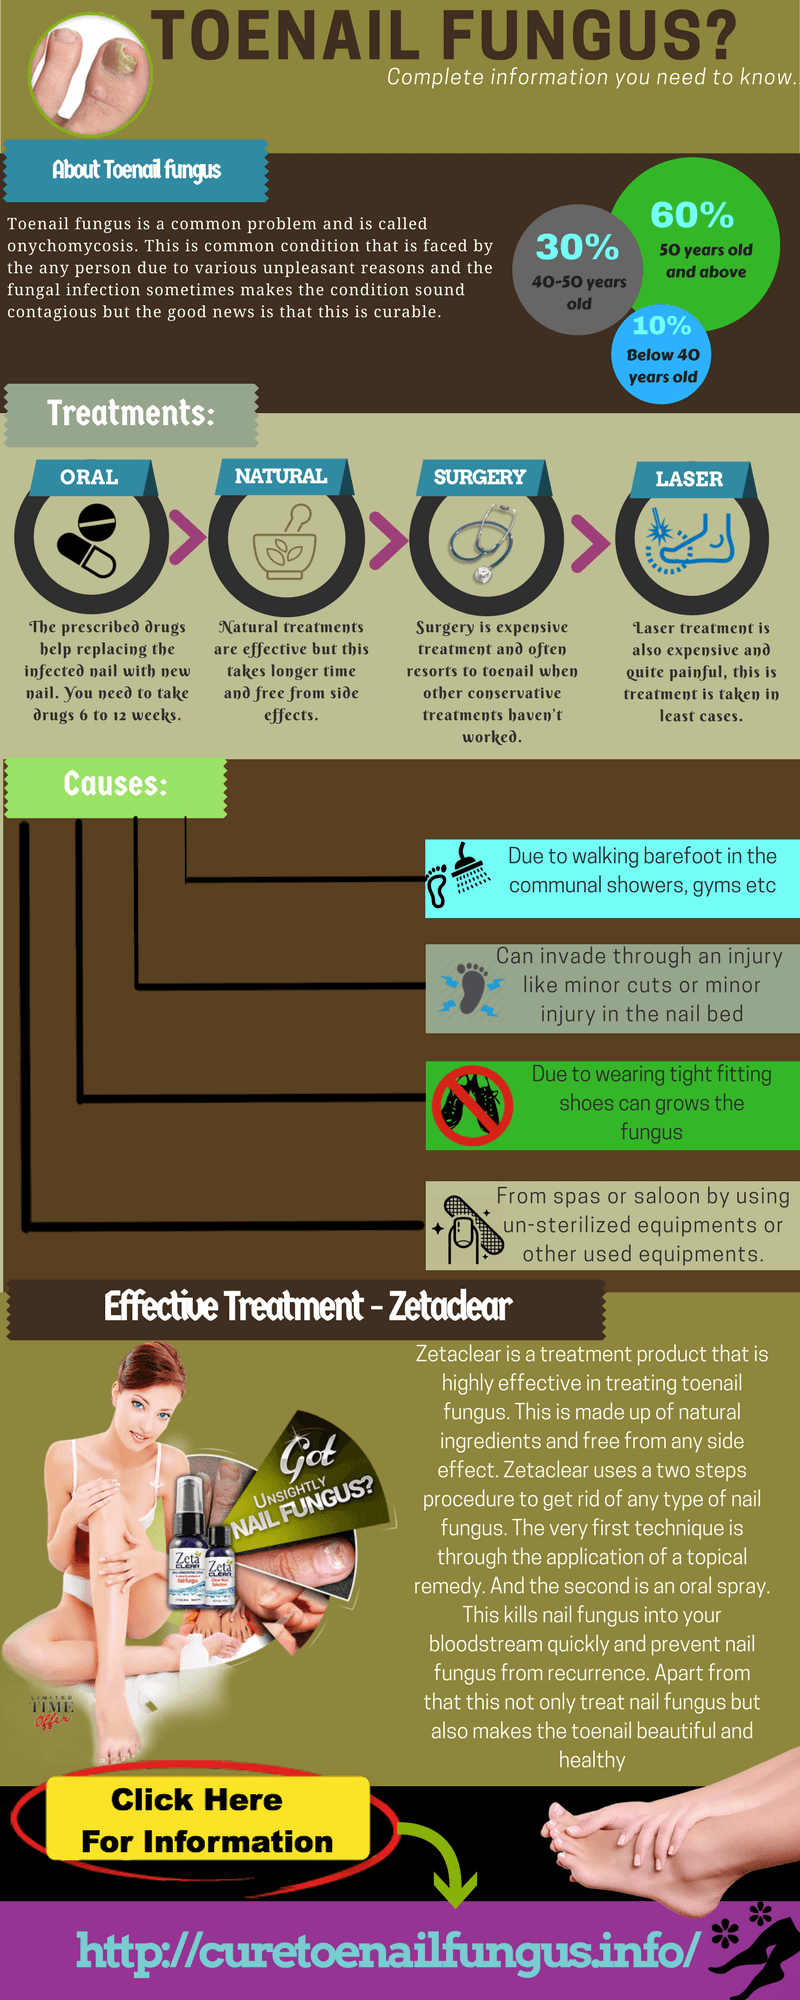 Everything You Need To Know About Toenail Fungus Infographic Portal